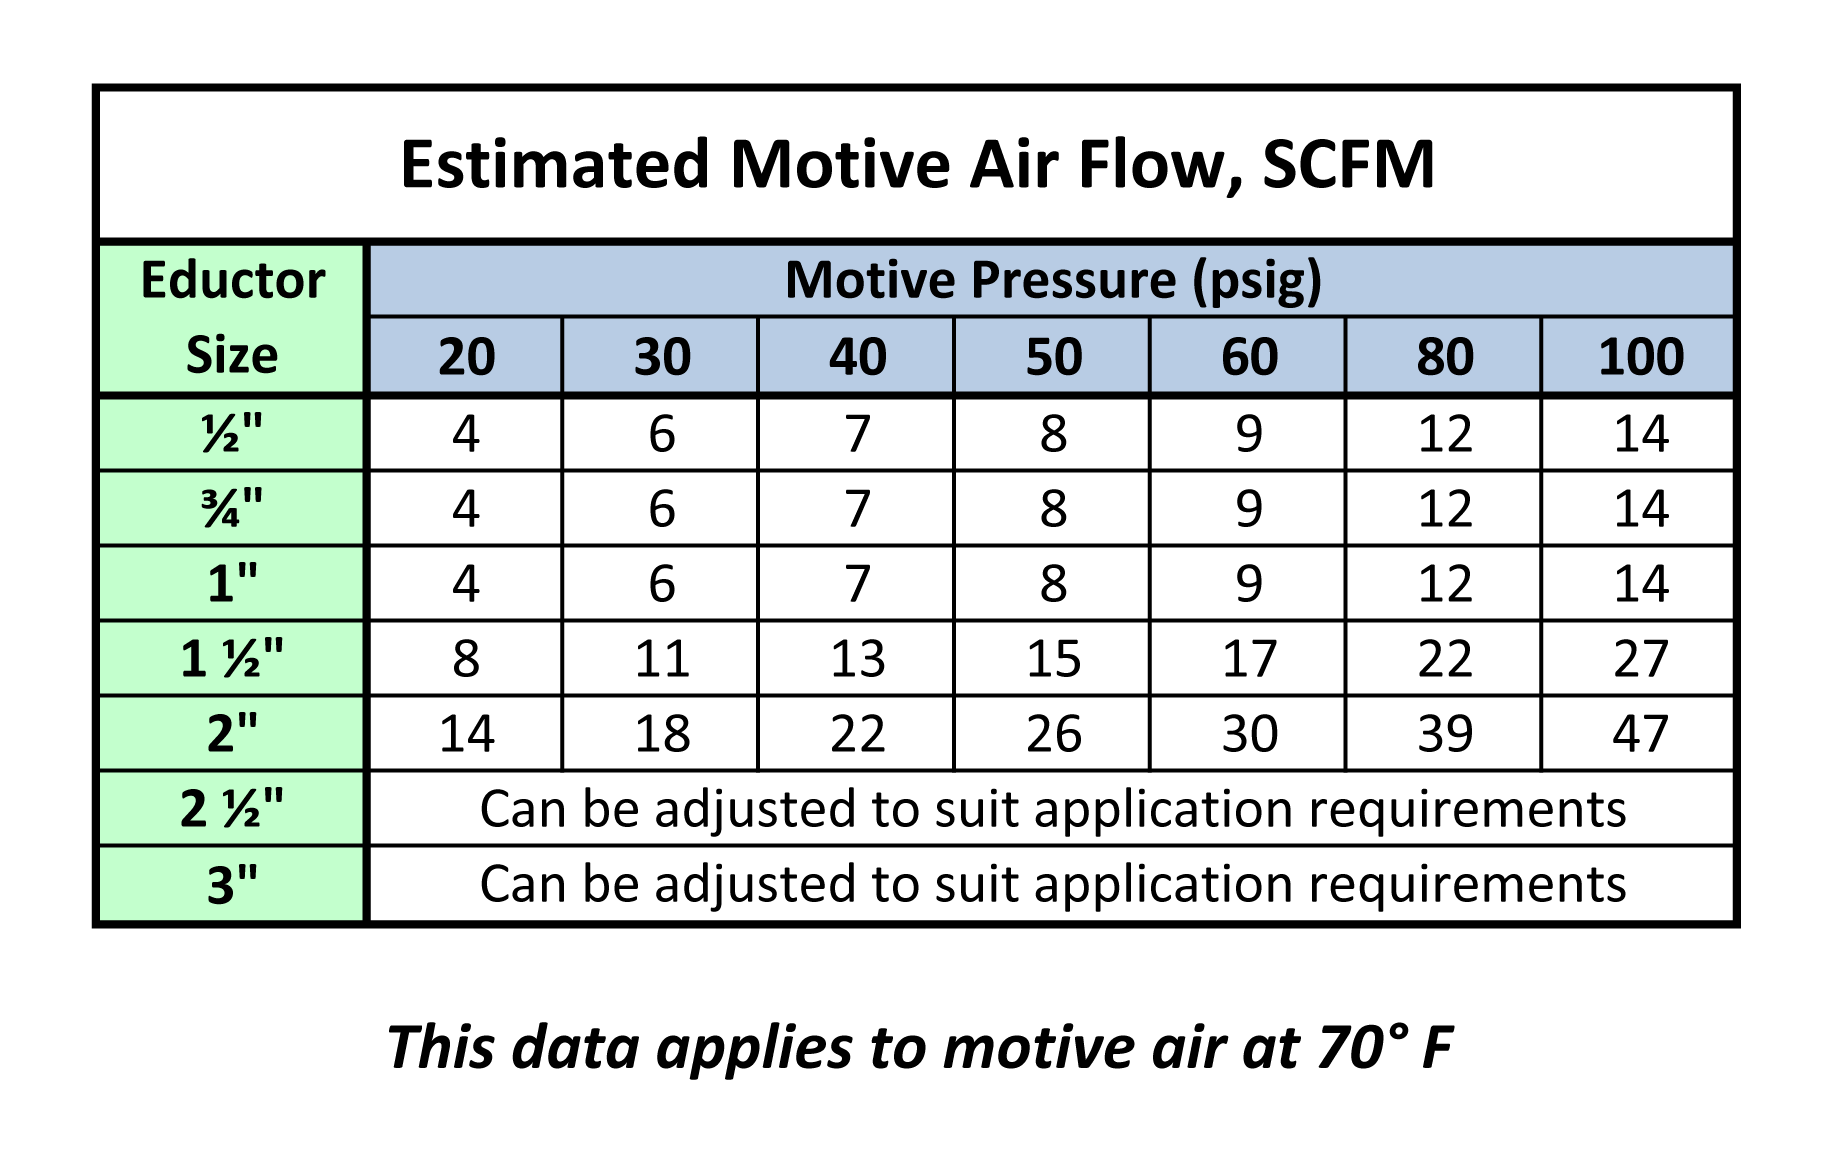 Estimated Motive Air Flow, SCFM